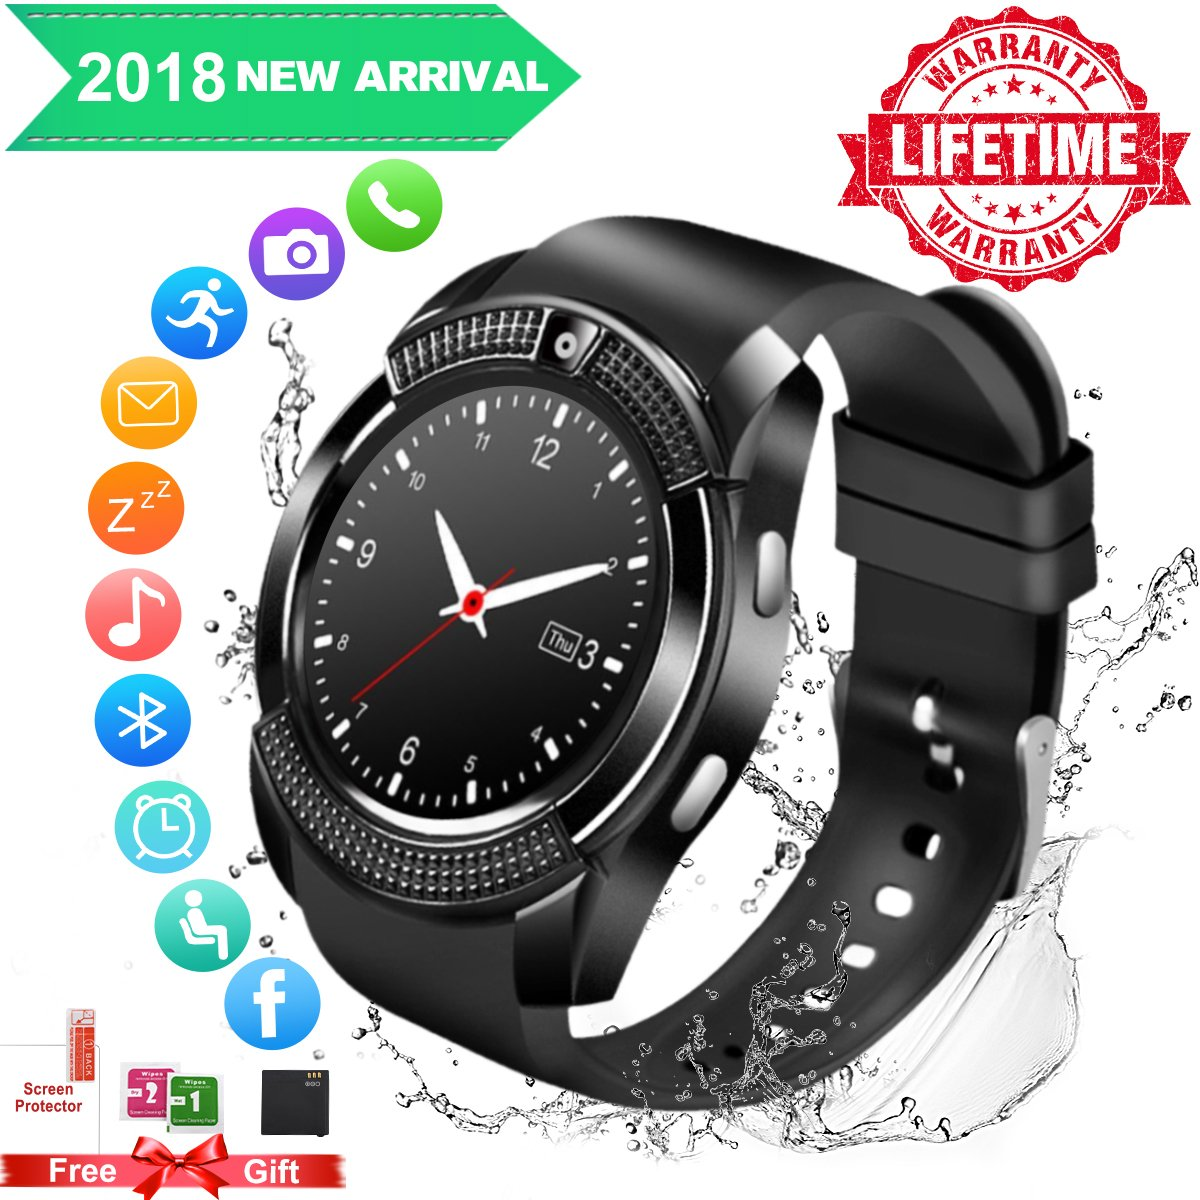 Smart Watch For Android Phones,Waterproof Smart Watches,Android Smartwatch Touchscreen With Camera,Bluetooth Watch Phone With SIM Card Slot Compatible Samsung IOS IPhone X 8 7 6 6S Plus 5 Men Women